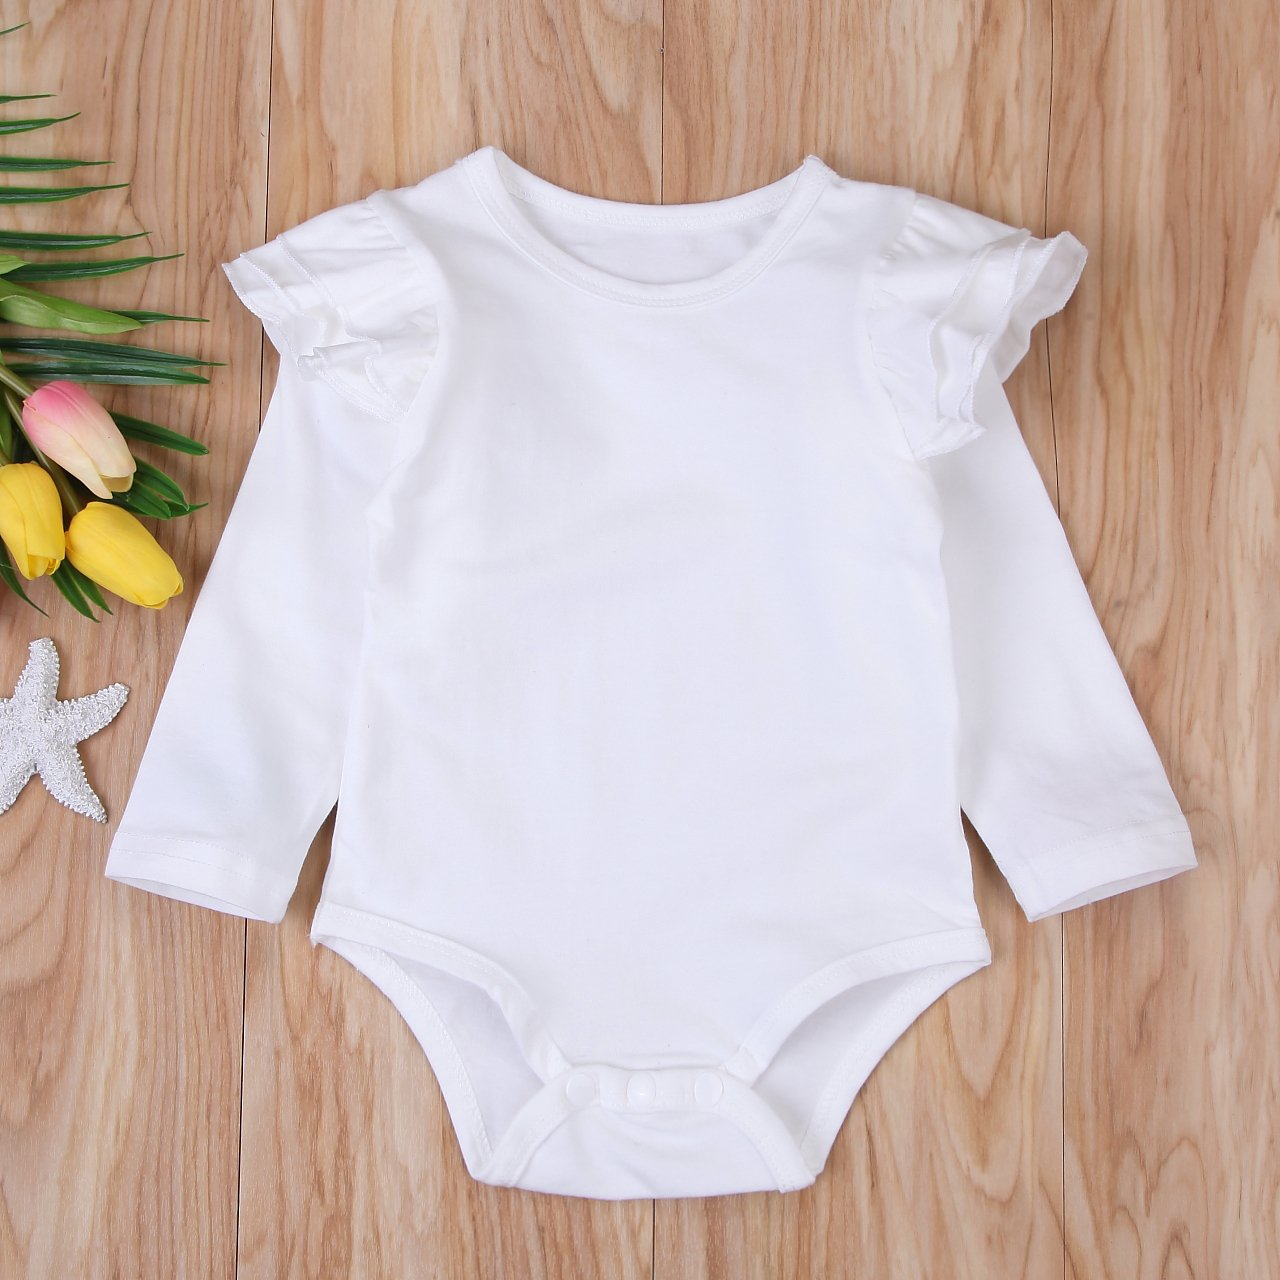 Minesiry Infant Baby Girl Basic Ruffle Long Sleeve Cotton Romper Bodysuit Tops Clothes